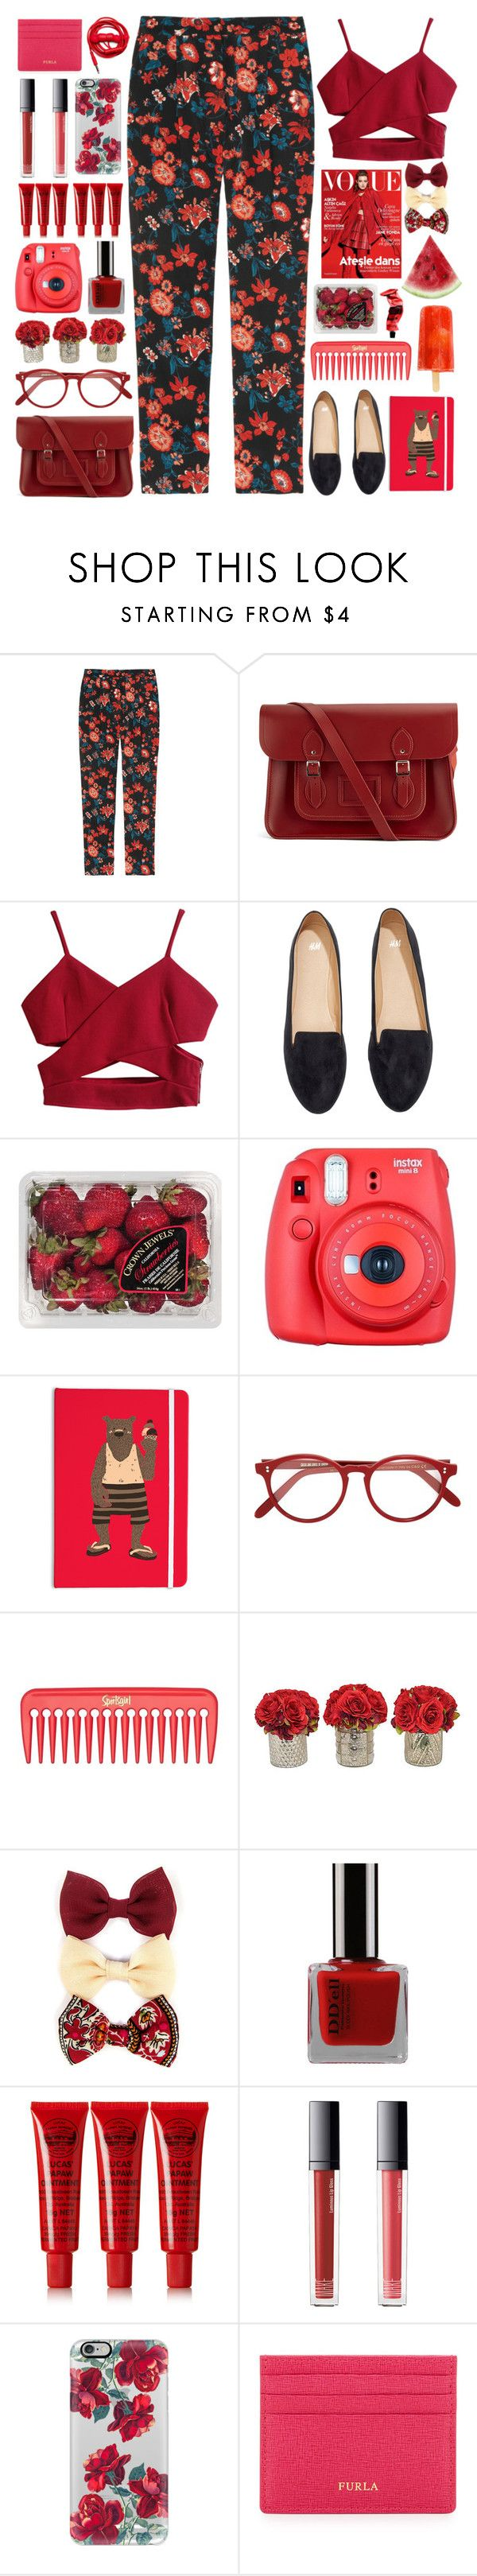 """Troye Sivan - EASE"" by annaclaraalvez ❤ liked on Polyvore featuring DKNY, The Cambridge Satchel Company, H&M, FRUIT, Fuji, Cutler and Gross, The French Bee, Carole, Lucas' Papaw Ointment and Make"